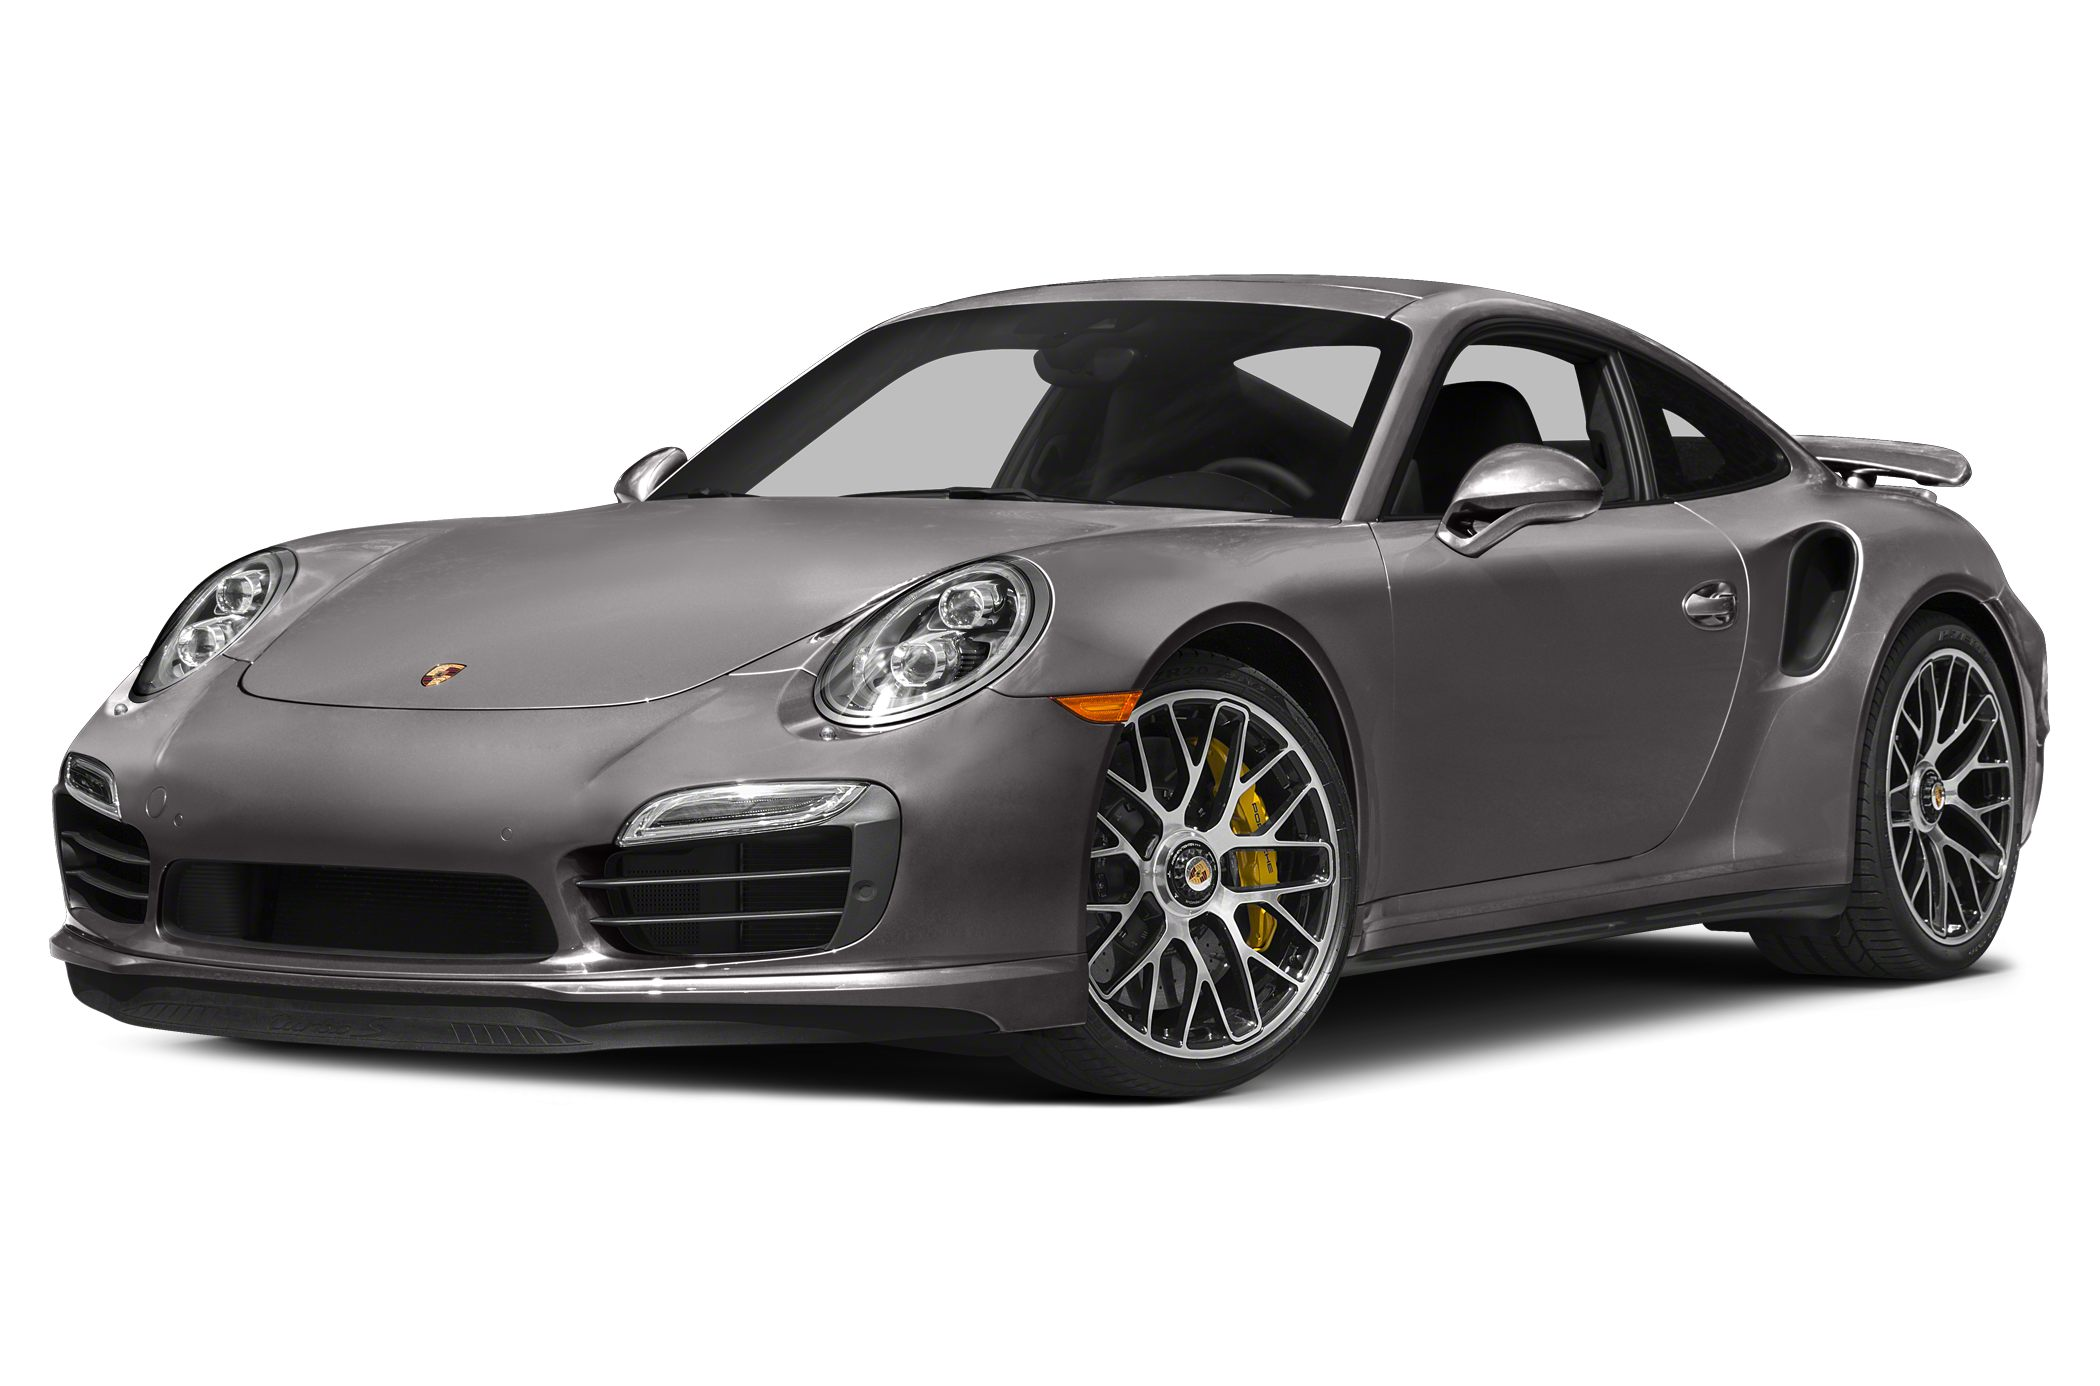 2015 Porsche 911 Turbo S Coupe for sale in Rocklin for $197,885 with 0 miles